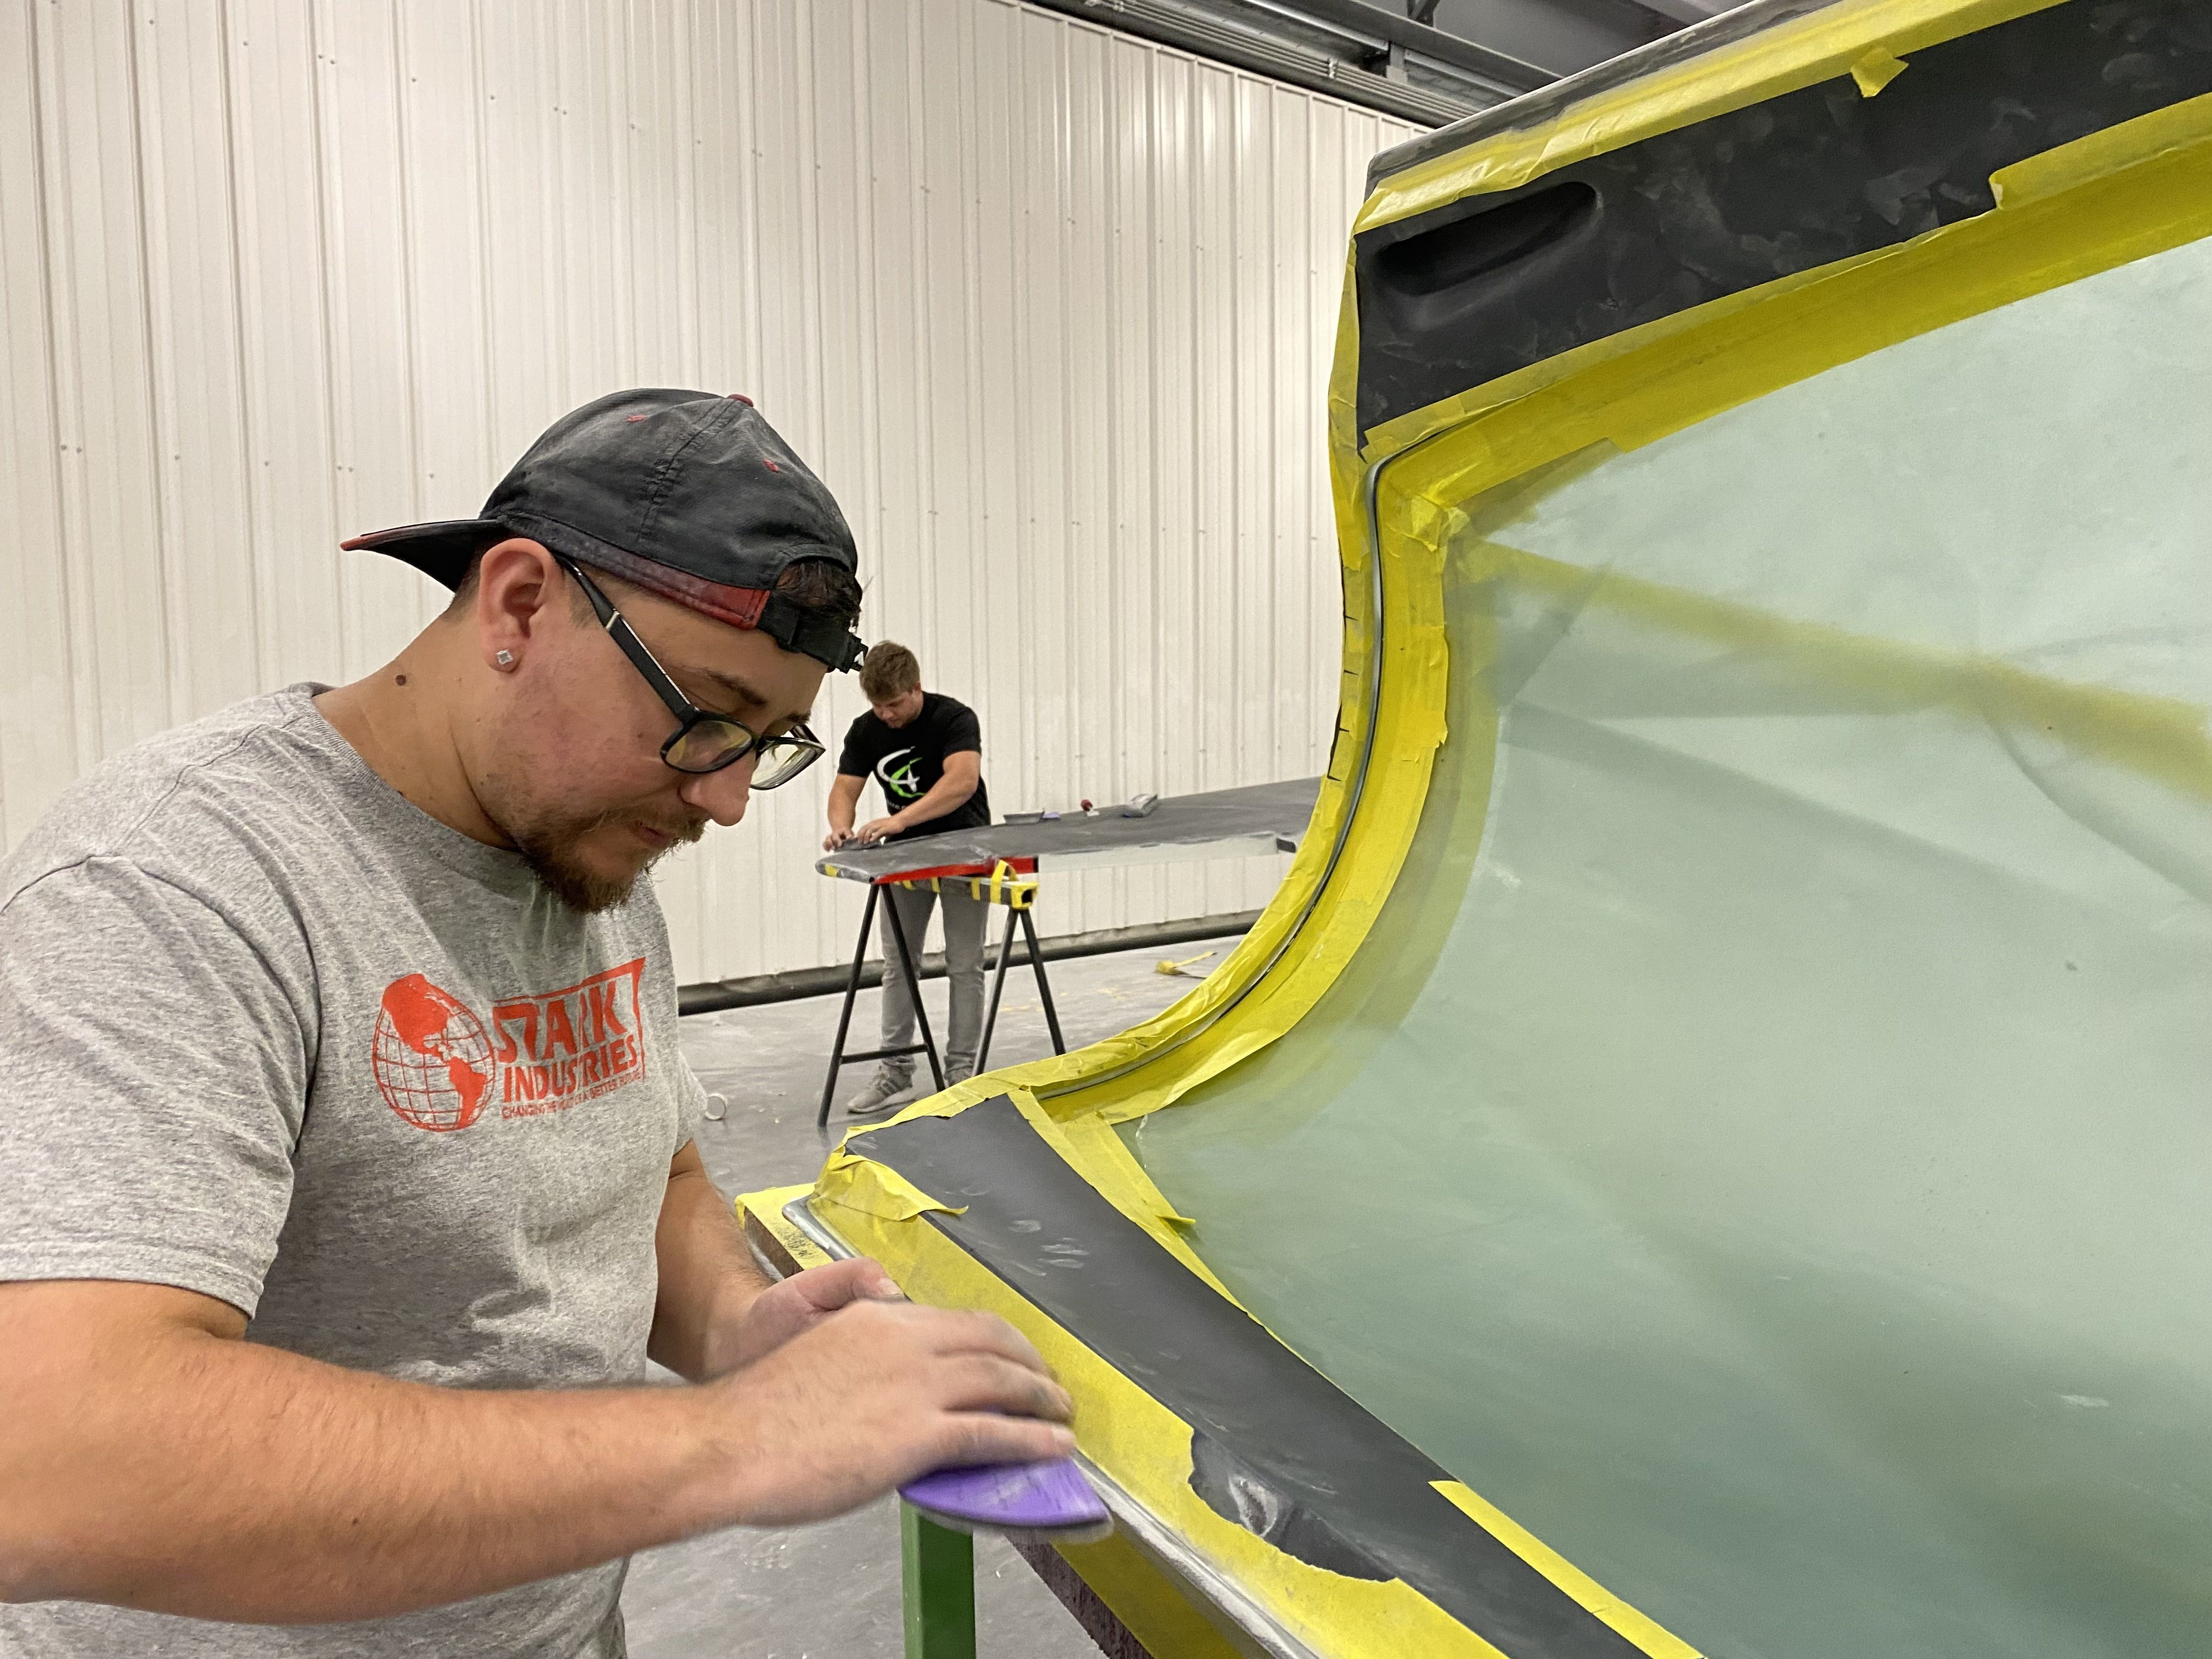 A worker preps part of a plane for painting.